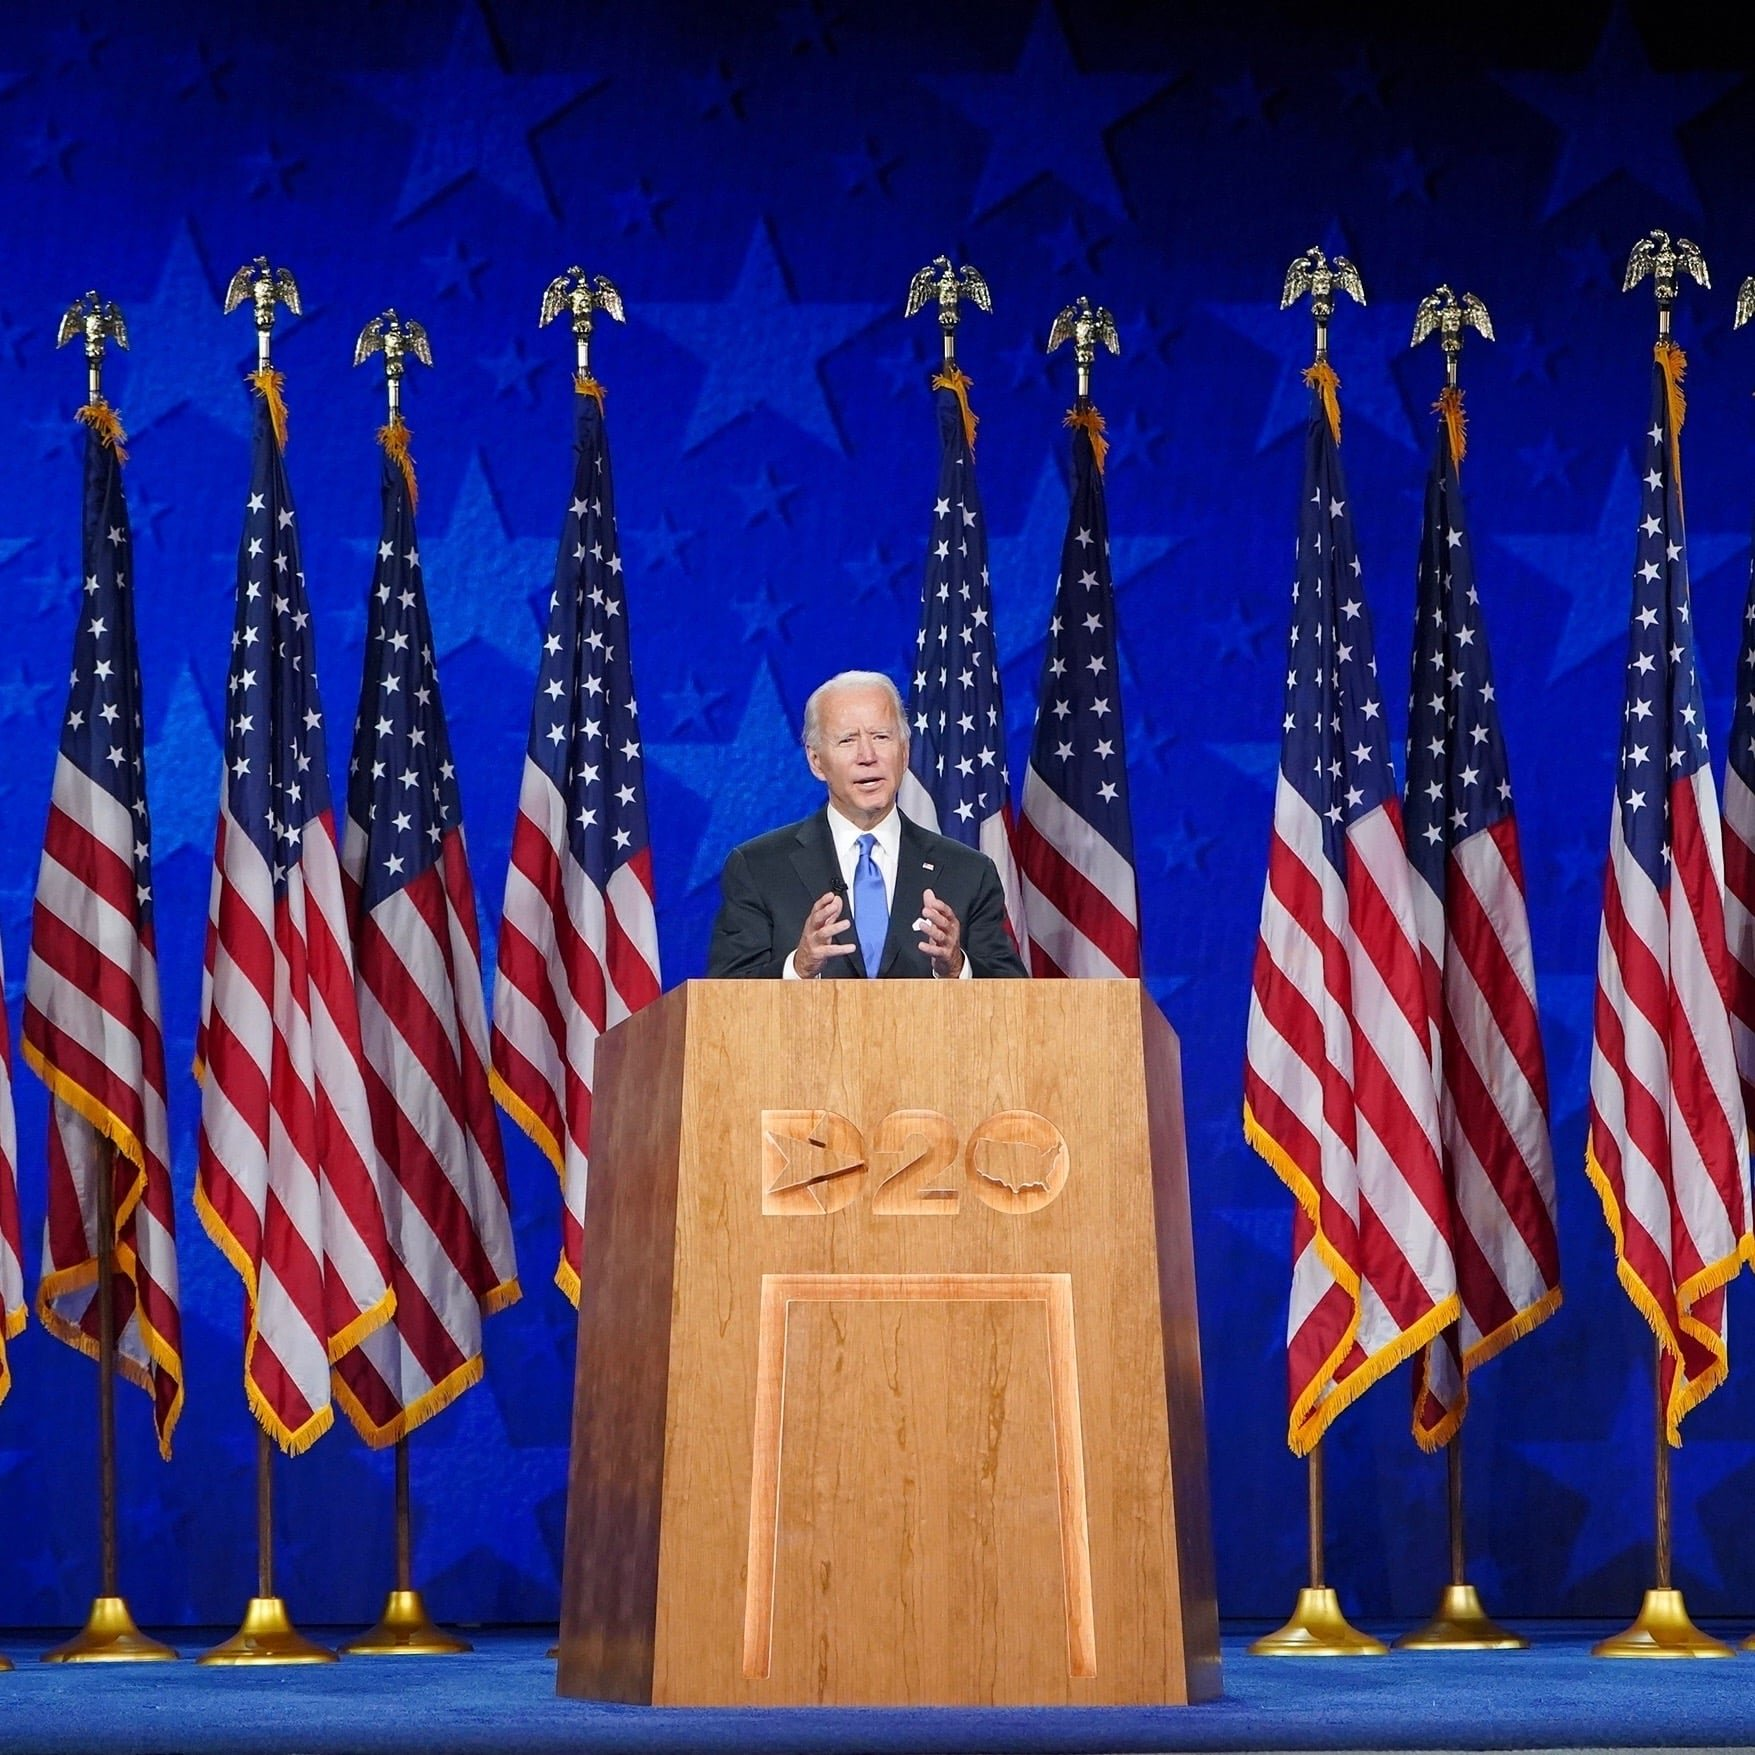 Pabst Theater Christmas Story Same As 2021? Milwaukee Pabst Theater Group Welcome President Biden For Town Hall Shepherd Express